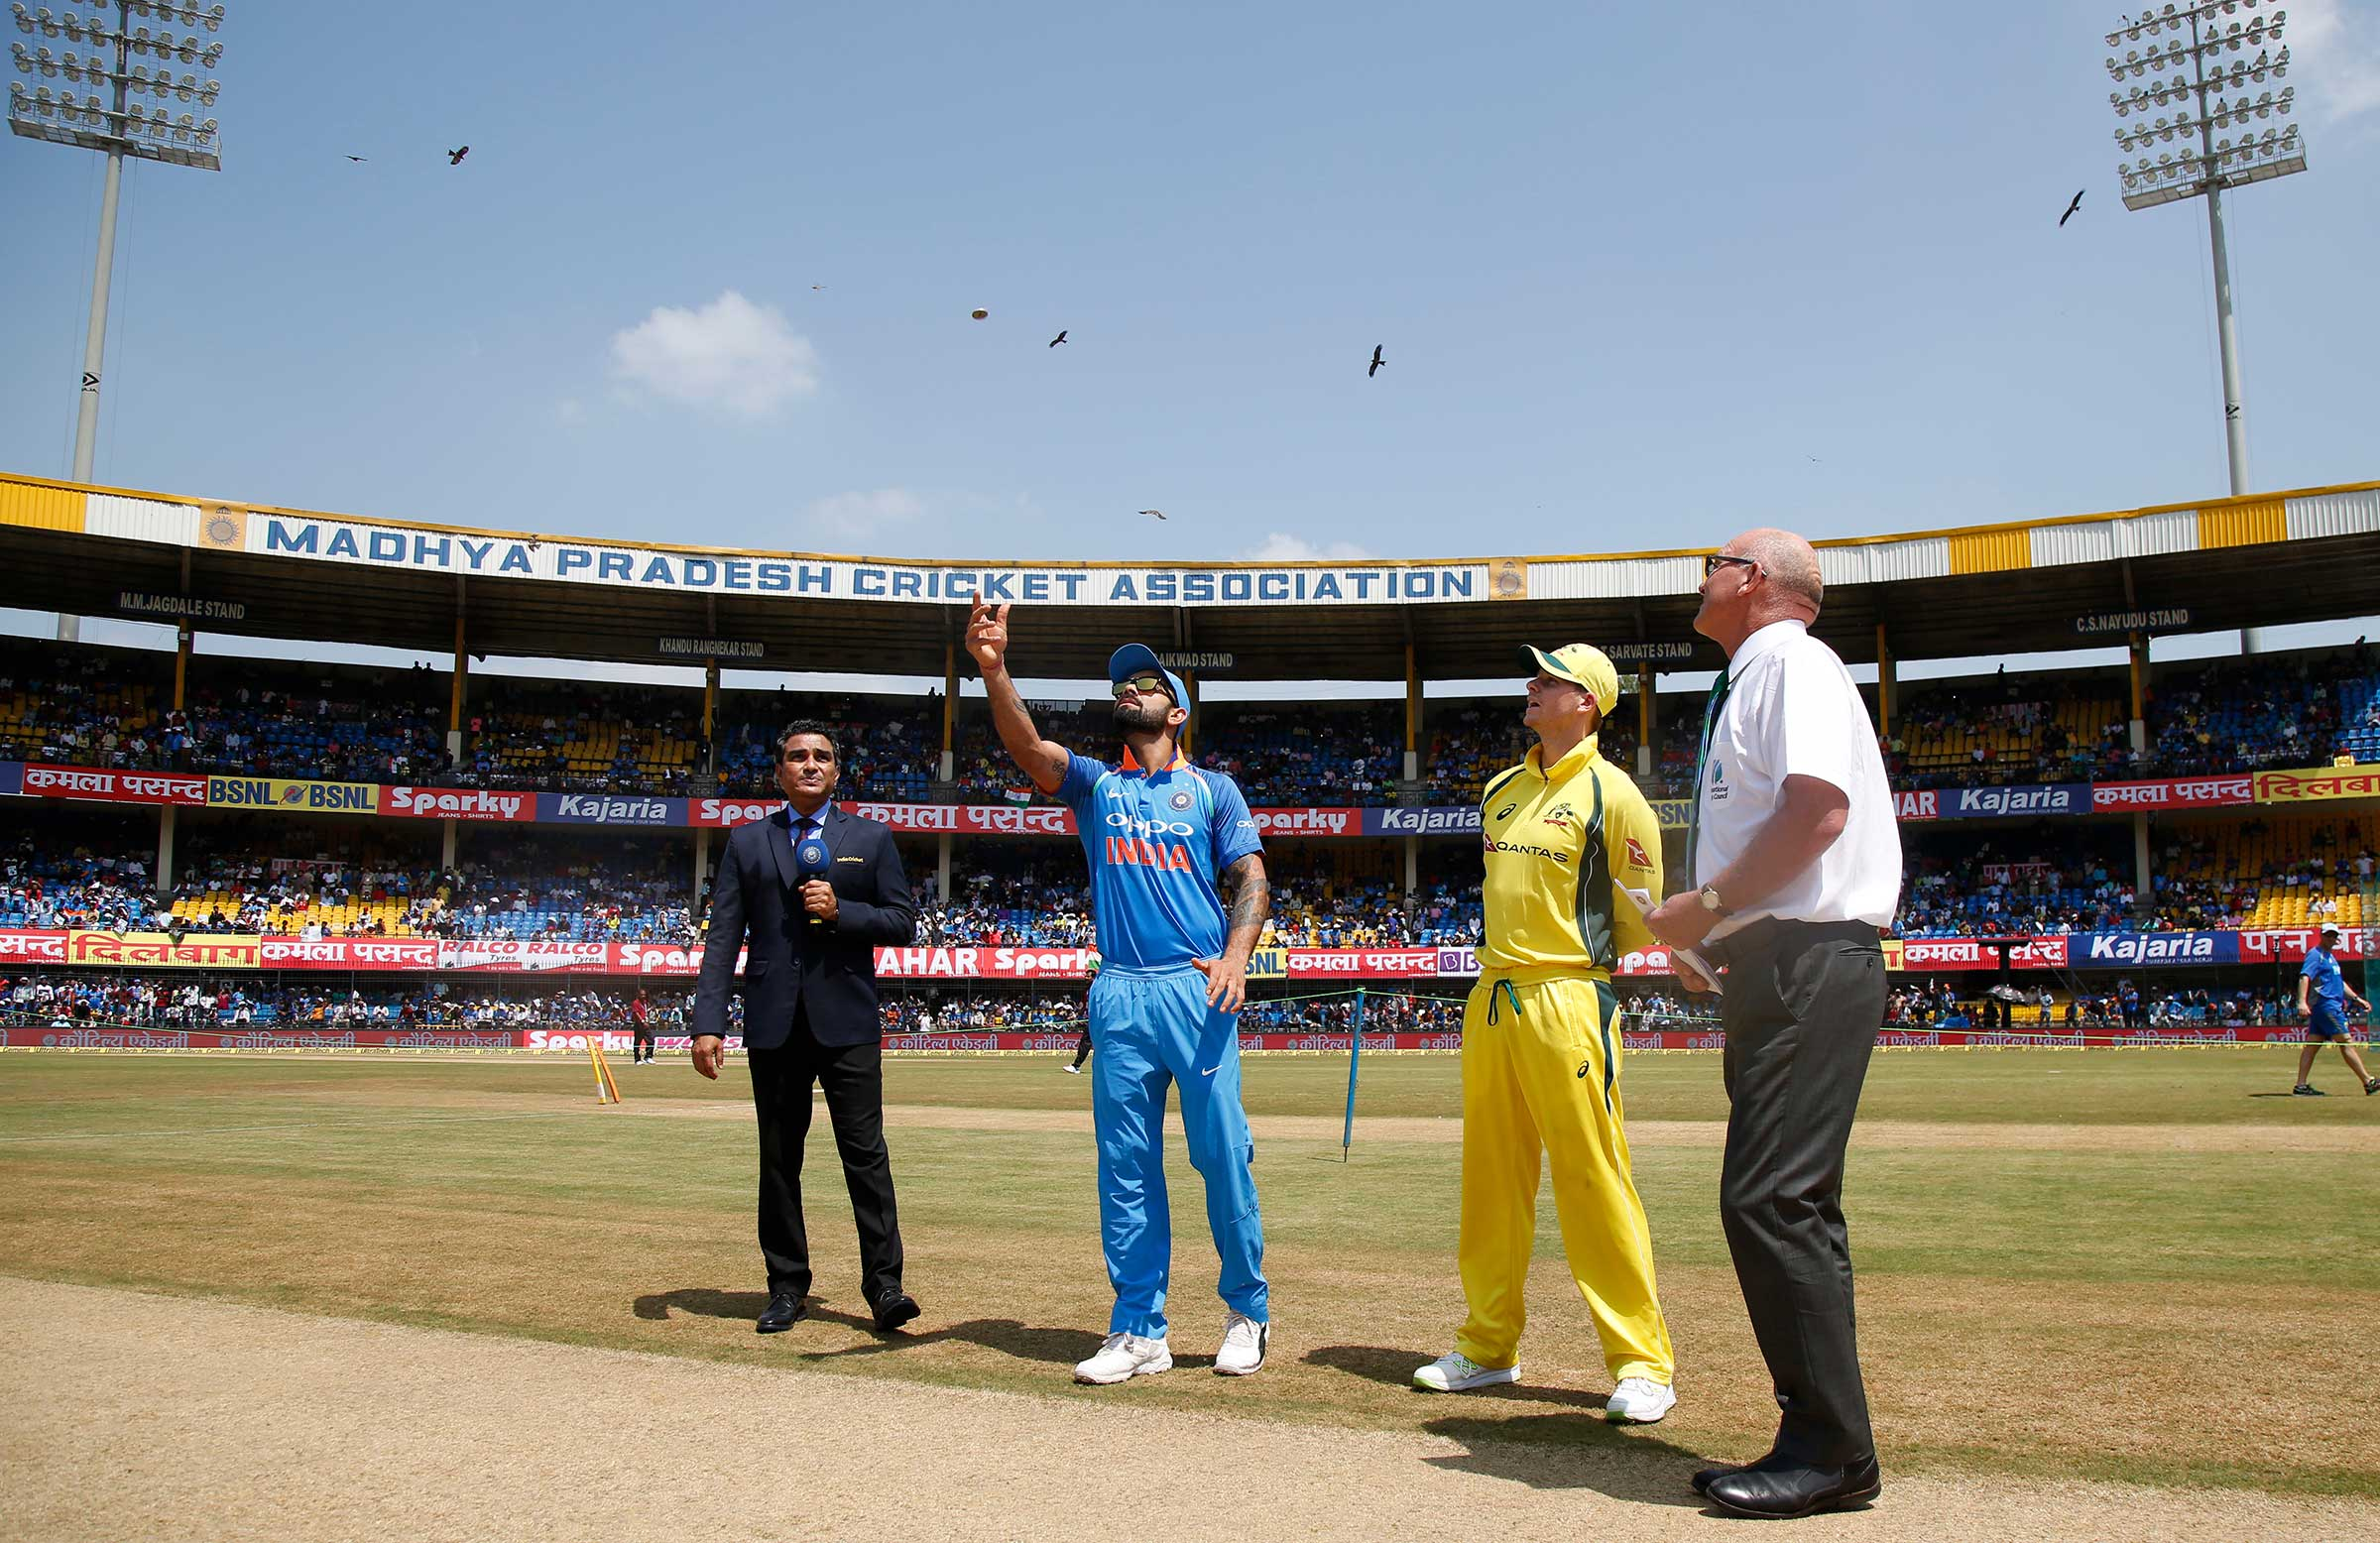 India vs Australia: Rain threat for fourth ODI in Bangalore